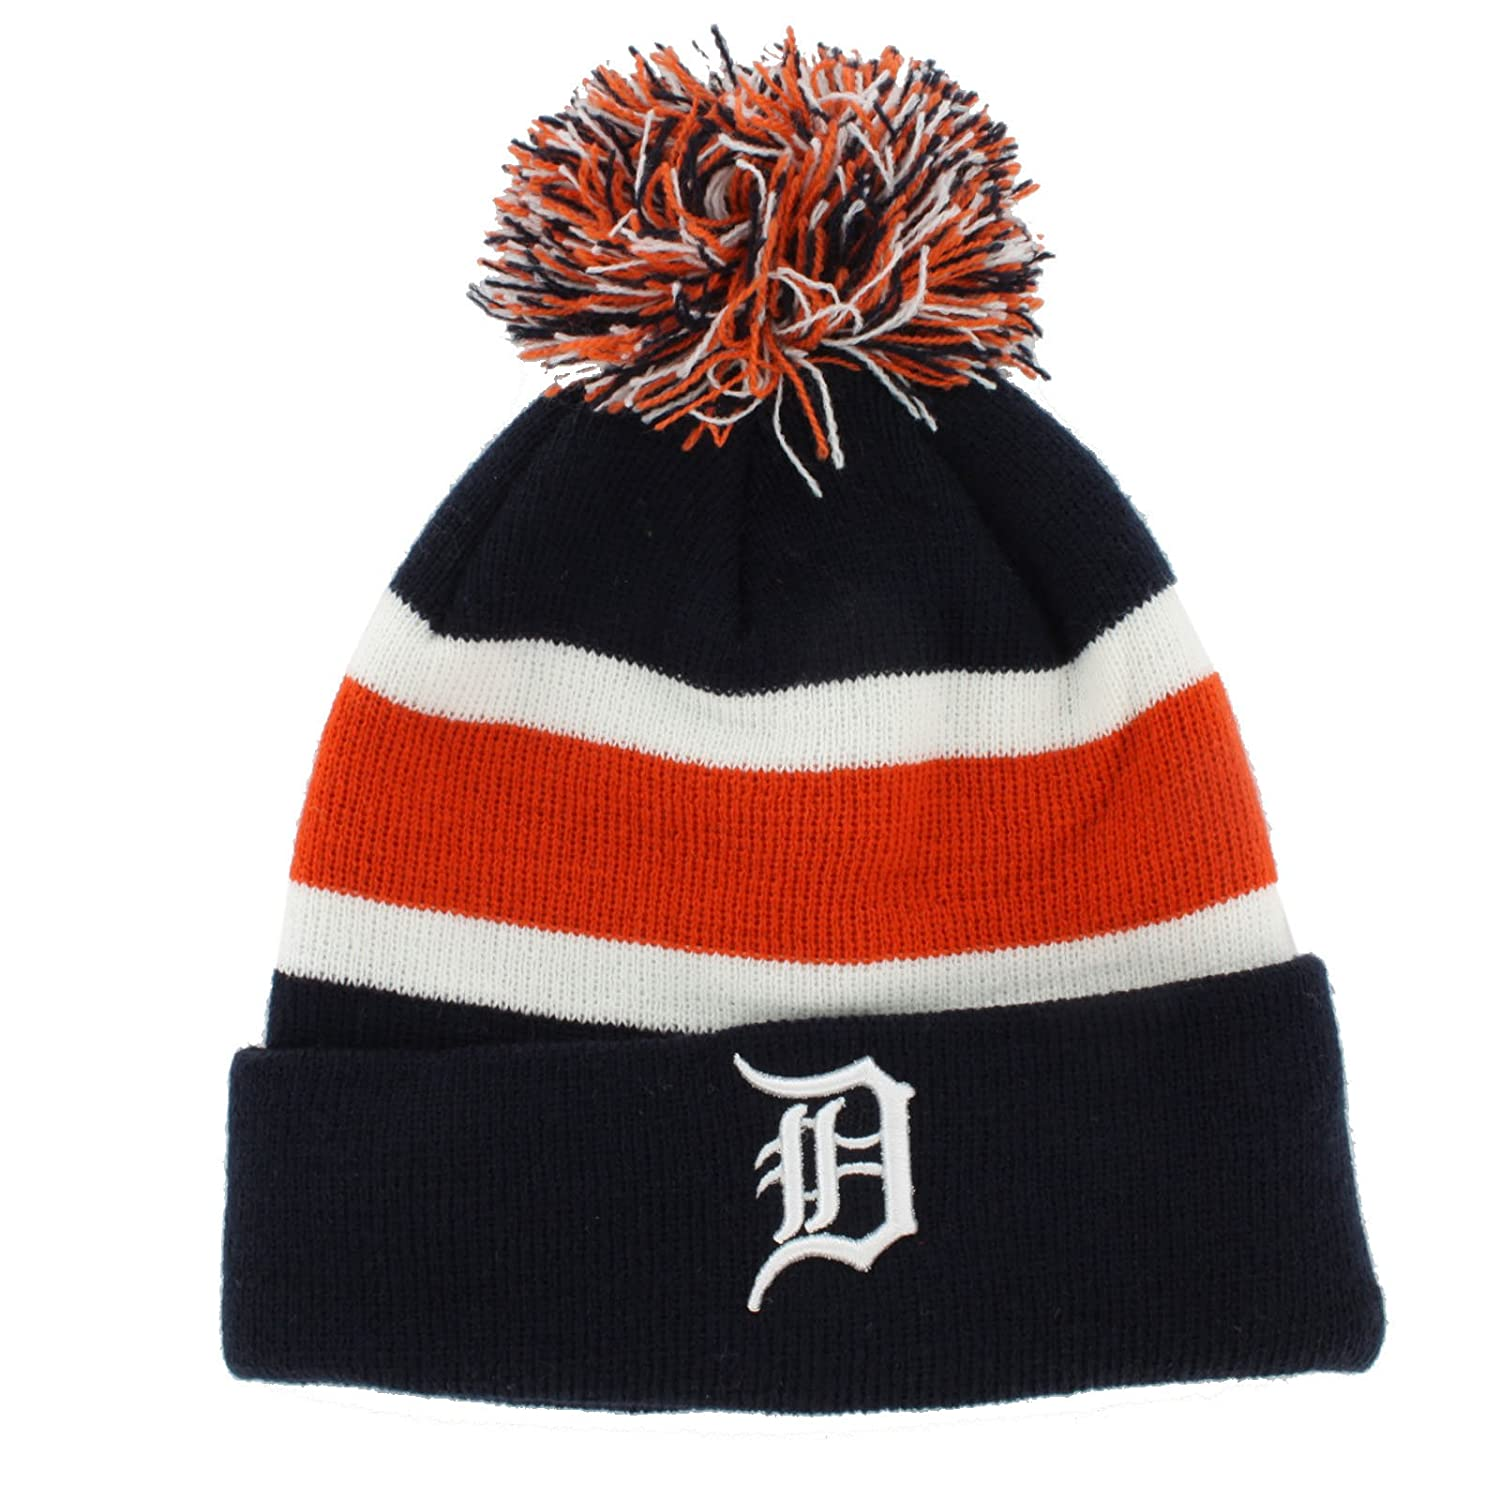 cd5386548112c1 coupon for new era mlb boston red sox beanies knit hats 050 8bfce ec1dc;  official store amazon mlb detroit tigers 47 brand breakaway cuff knit hat  with pom ...